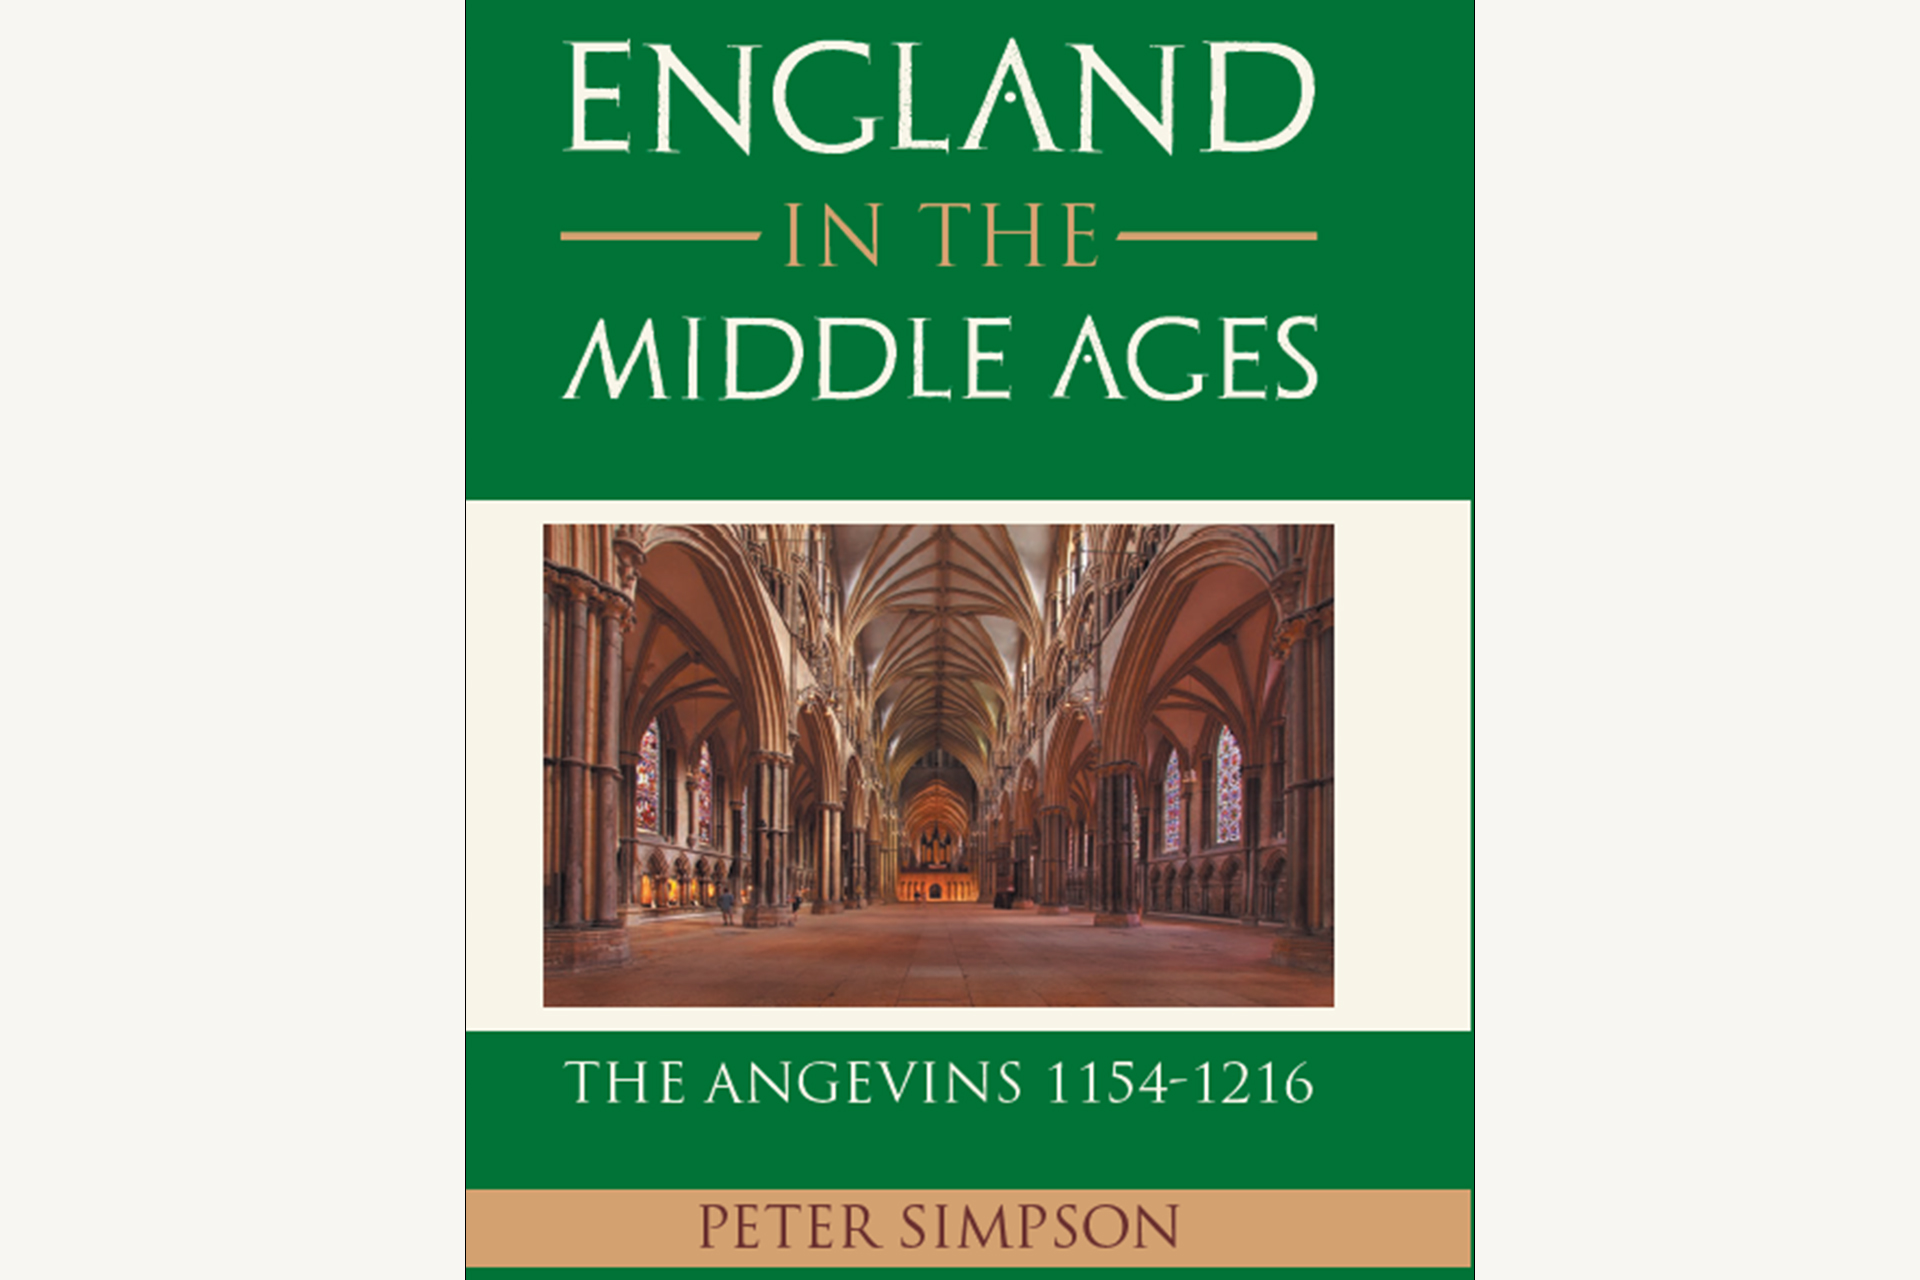 England in the Middle Ages - Peter Simpson